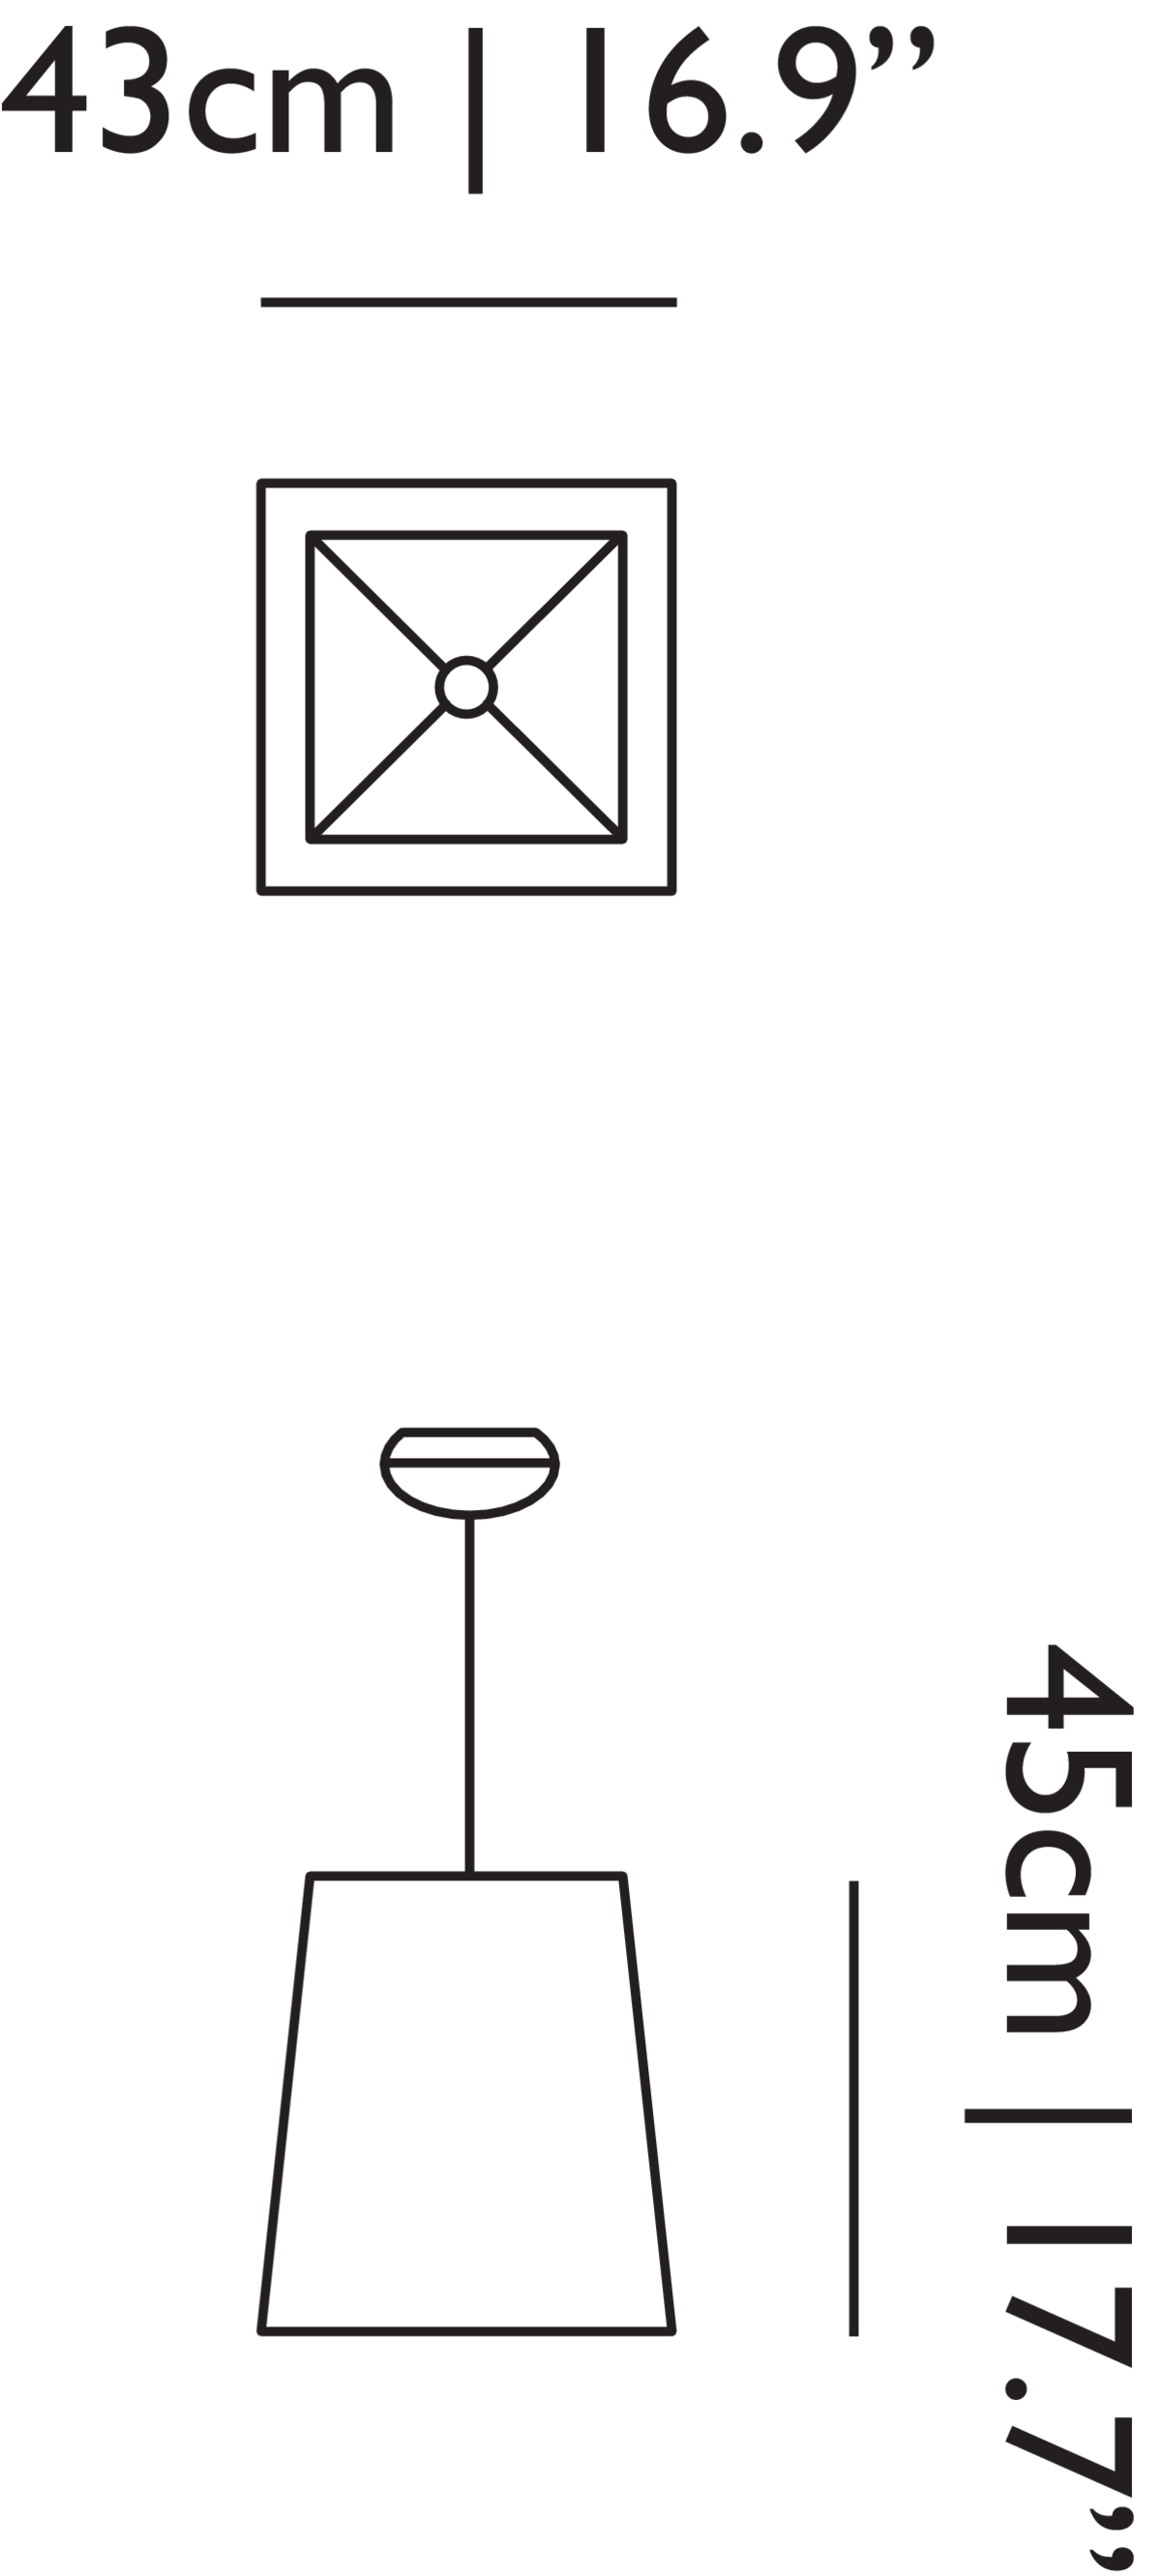 Square Light suspension linedrawing with dimensions